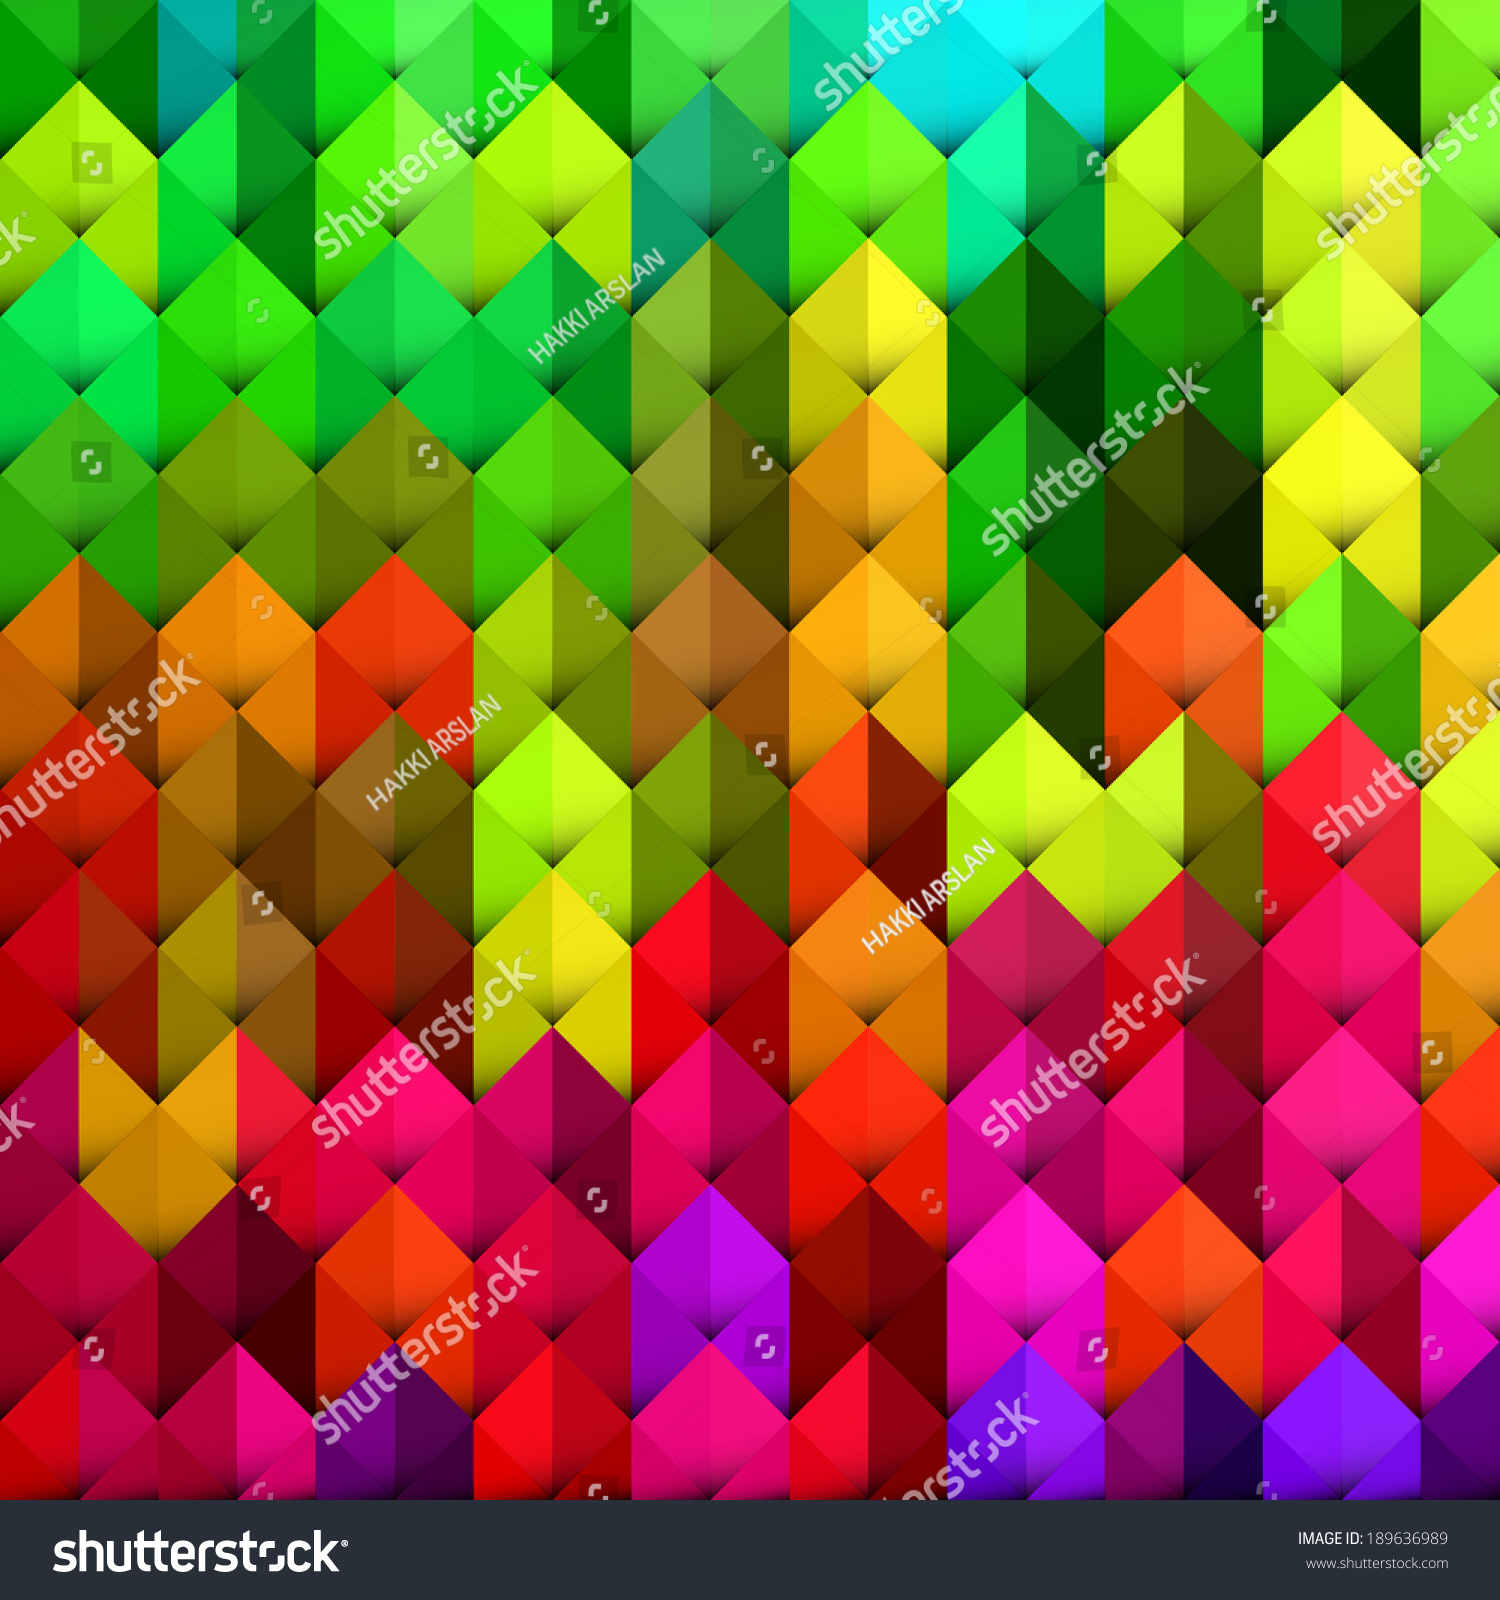 Abstract Geometric Background With Vibrant Color Tones